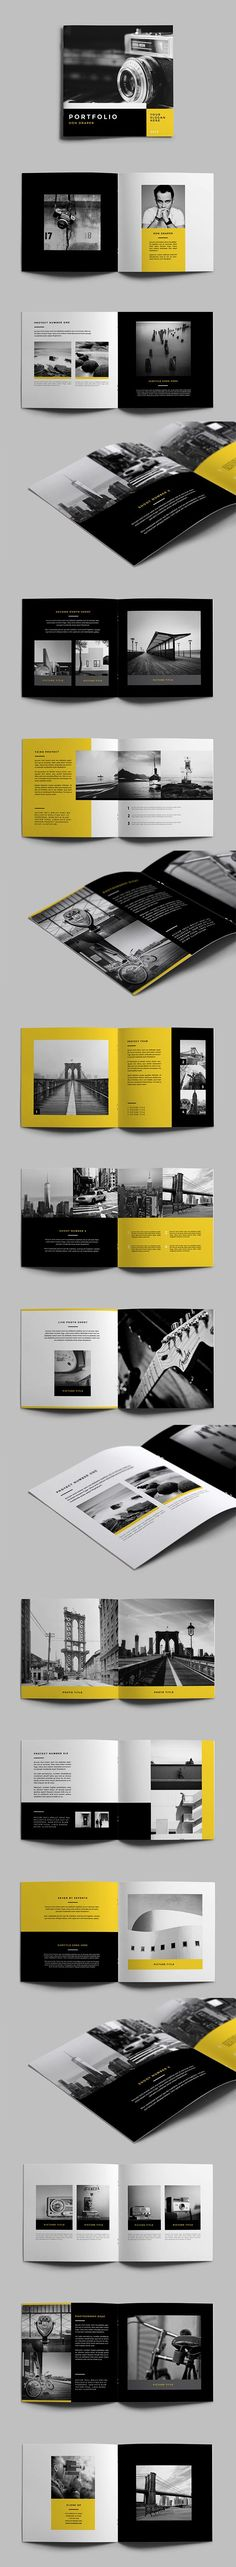 Simple Minimal Portfolio. Download here: http://graphicriver.net/item/simple-minimal-portfolio/11455547?ref=abradesign #portfolio #brochure #design: